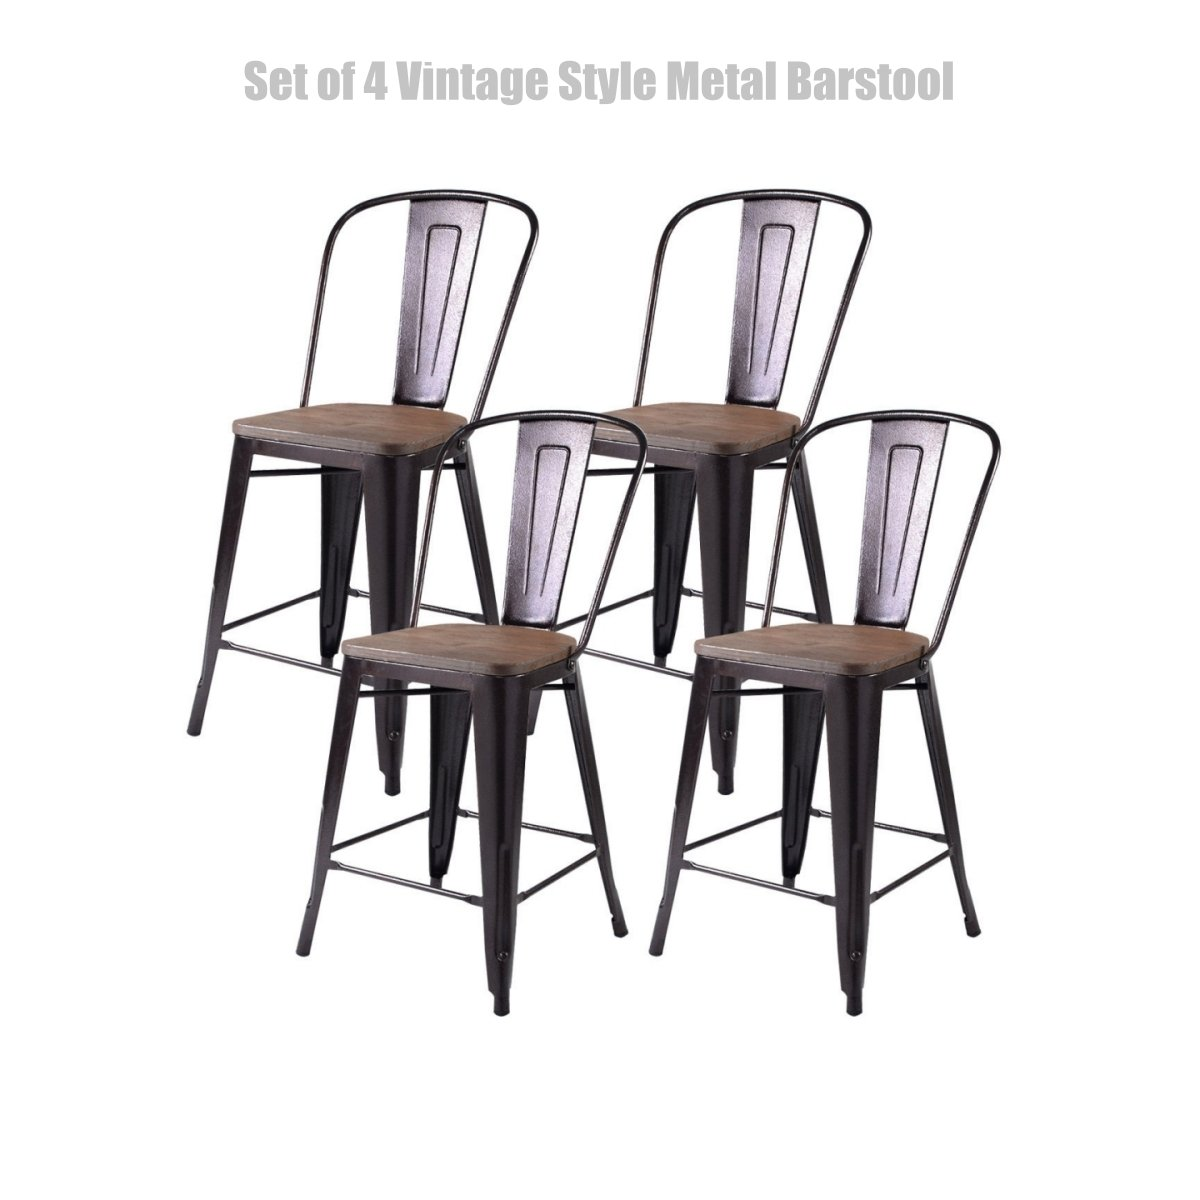 Vintage Style Metal Barstool Solid Steel Construction Comfortable Backrest Scratch Resistant Side Chair Home Office Furniture - Set of 4 Copper 24''H #1434